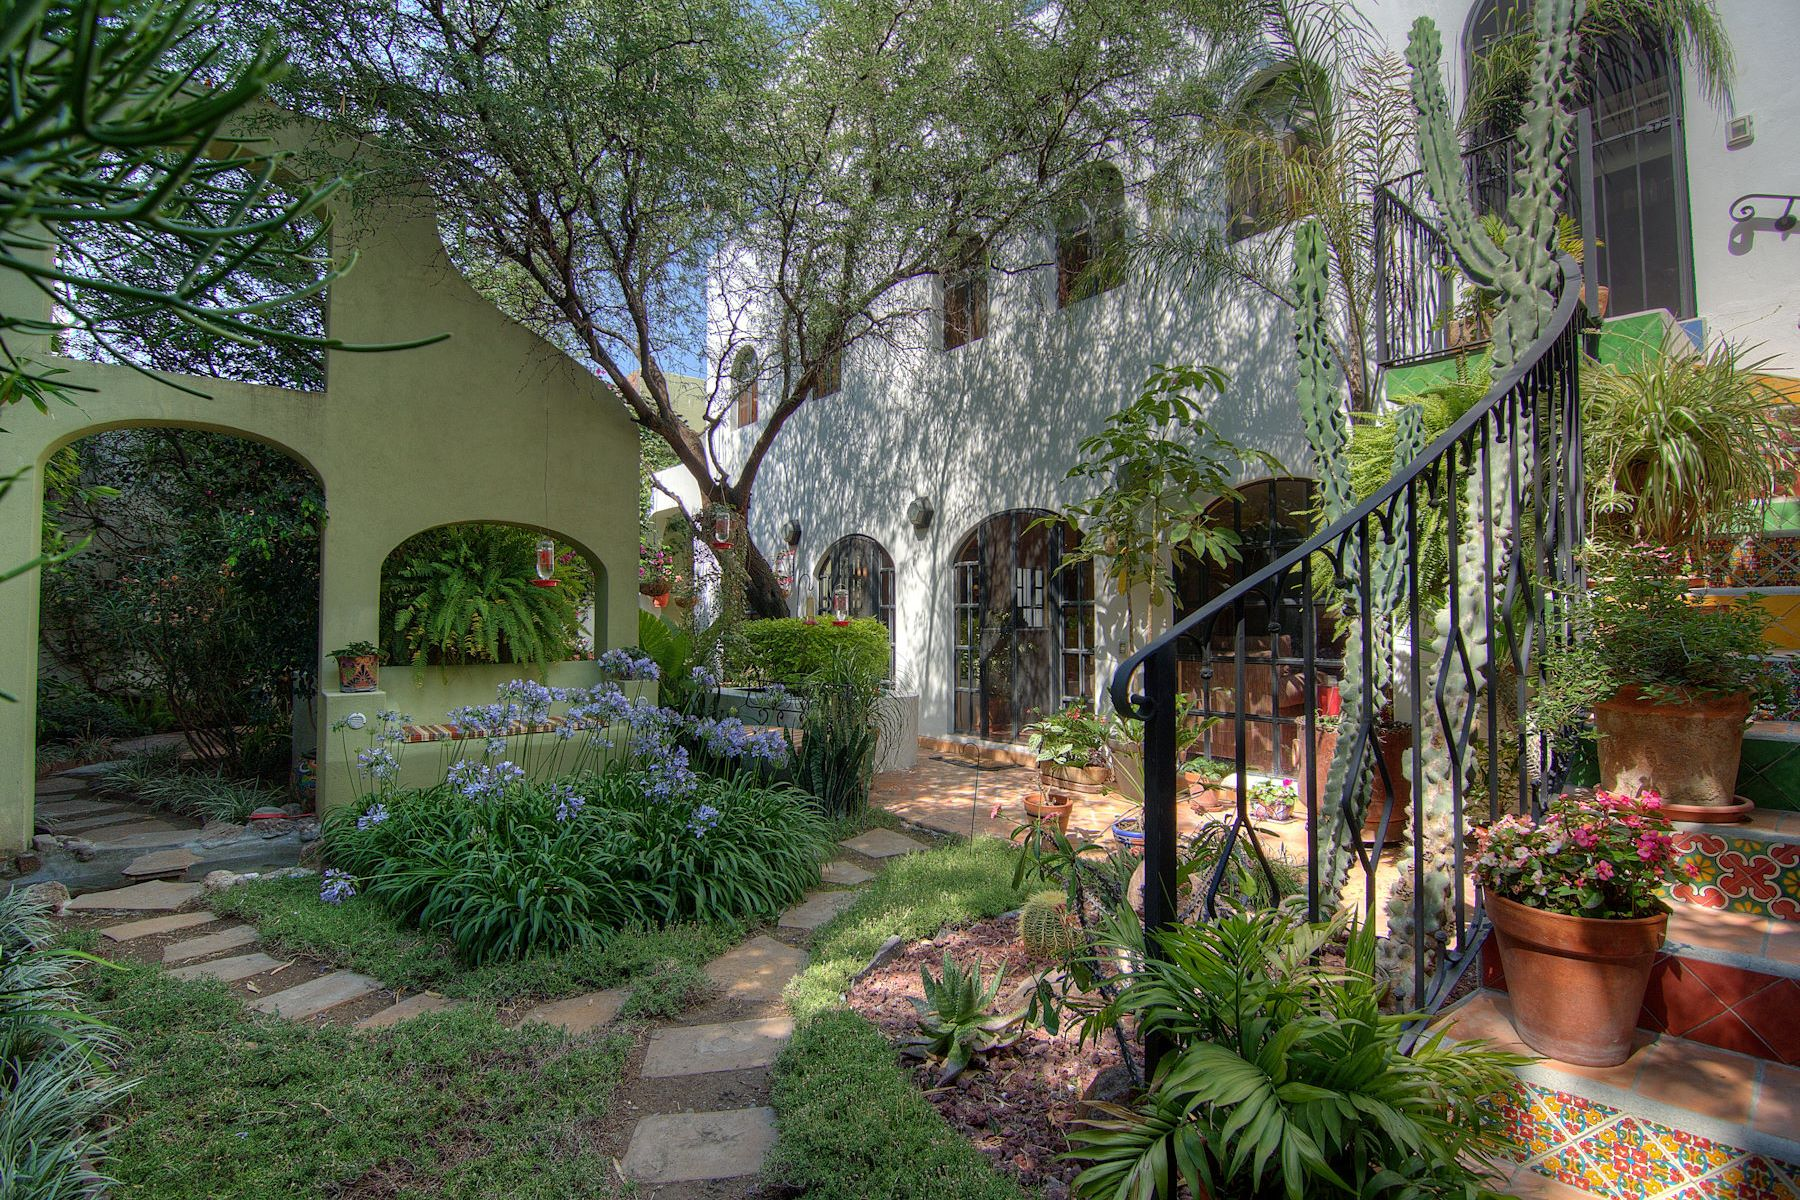 Single Family Home for Sale at Casa Bello Jardin San Miguel De Allende, Guanajuato Mexico